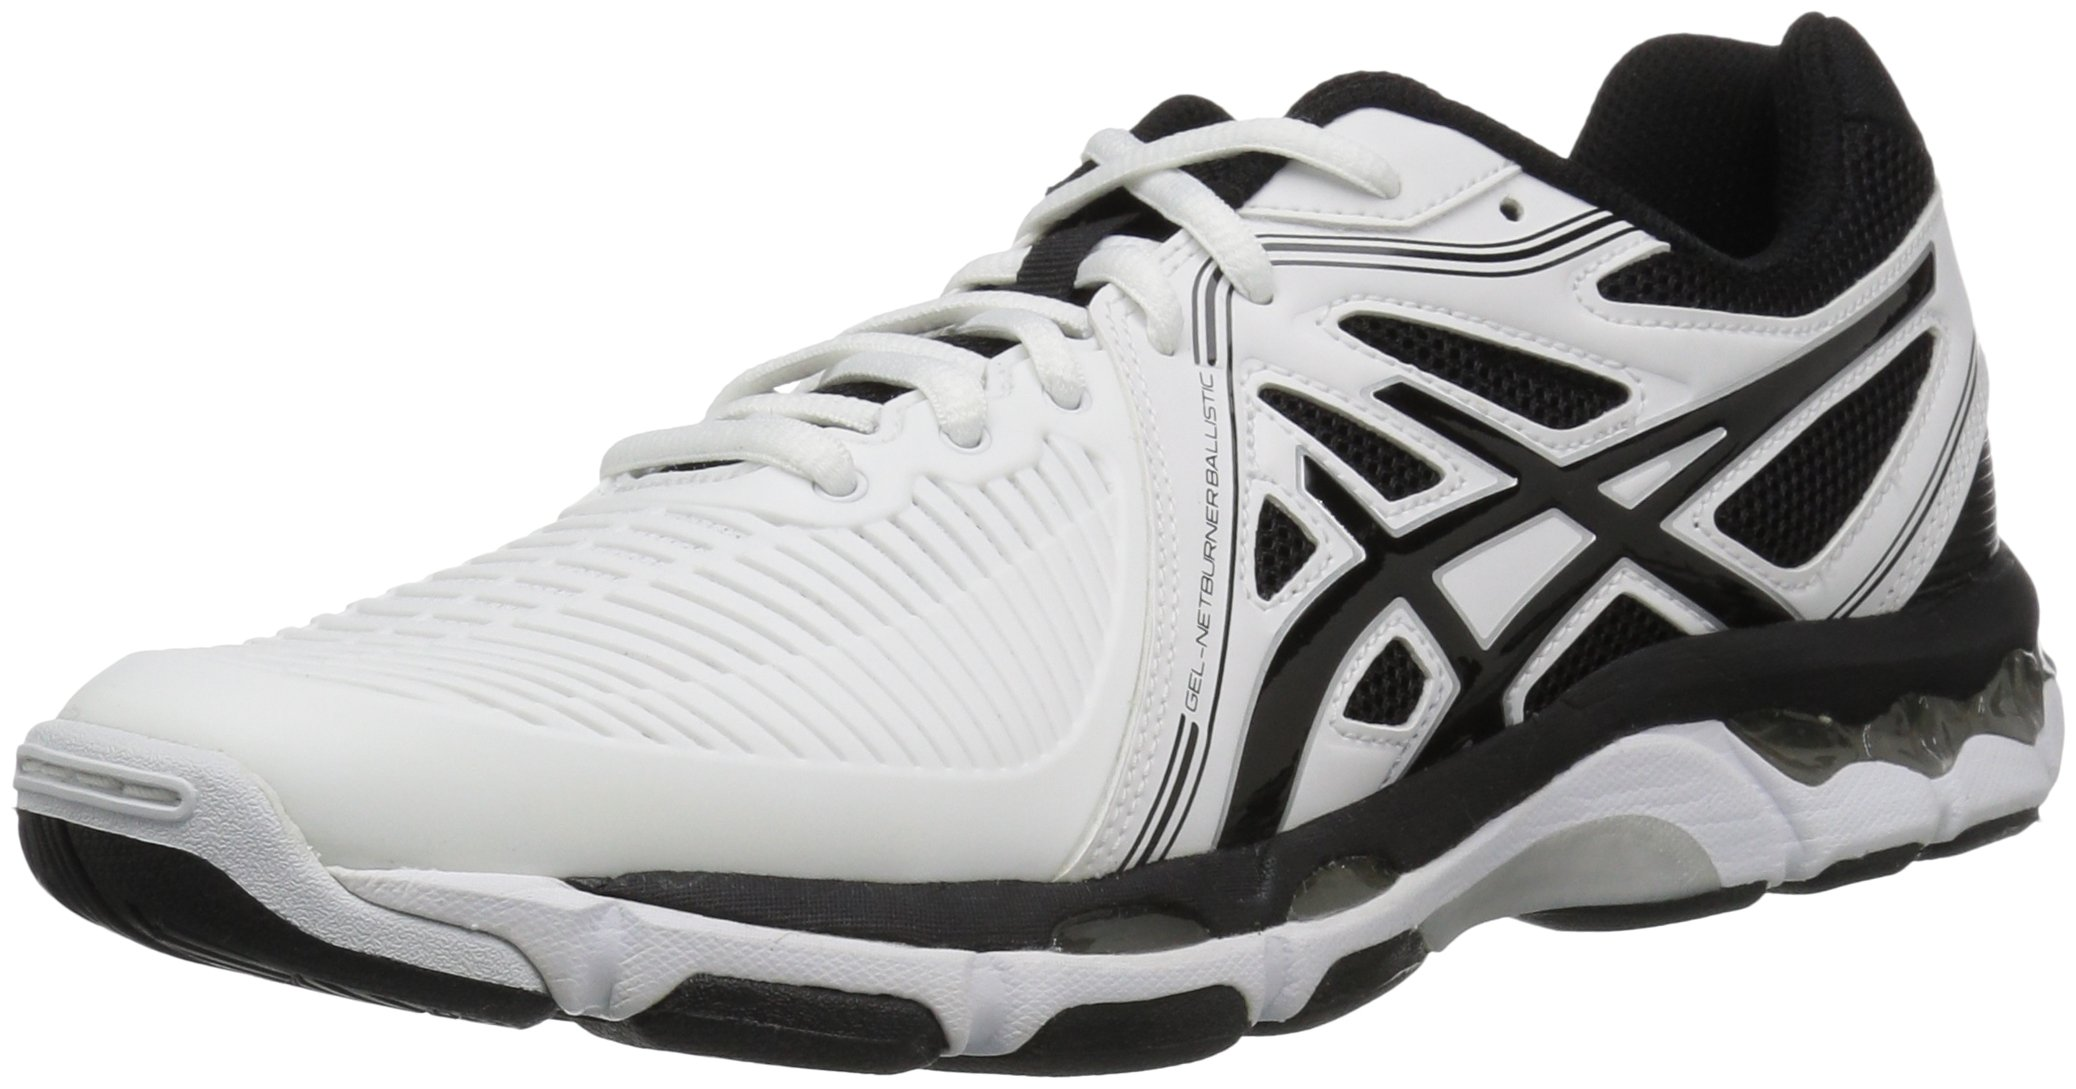 ASICS Men's Gel-Netburner Ballistic Volleyball Shoe, White/Black/Silver, 6.5 M US